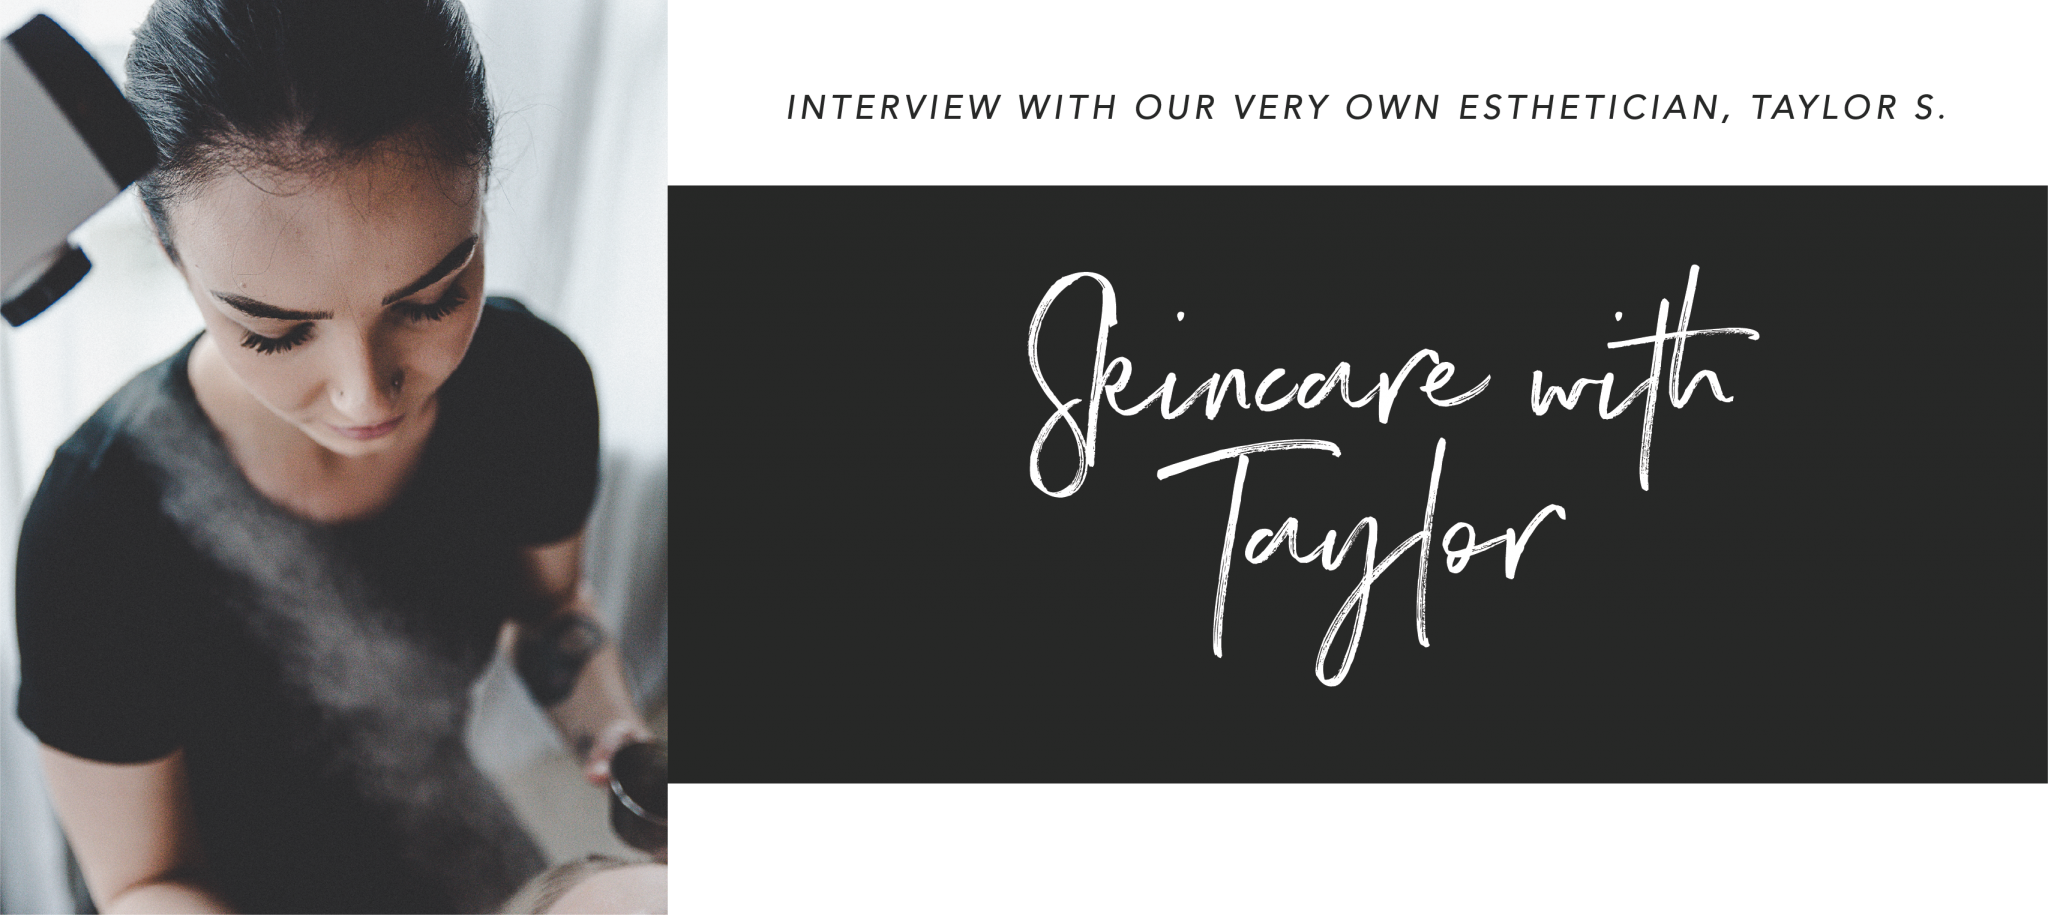 Skincare with Taylor